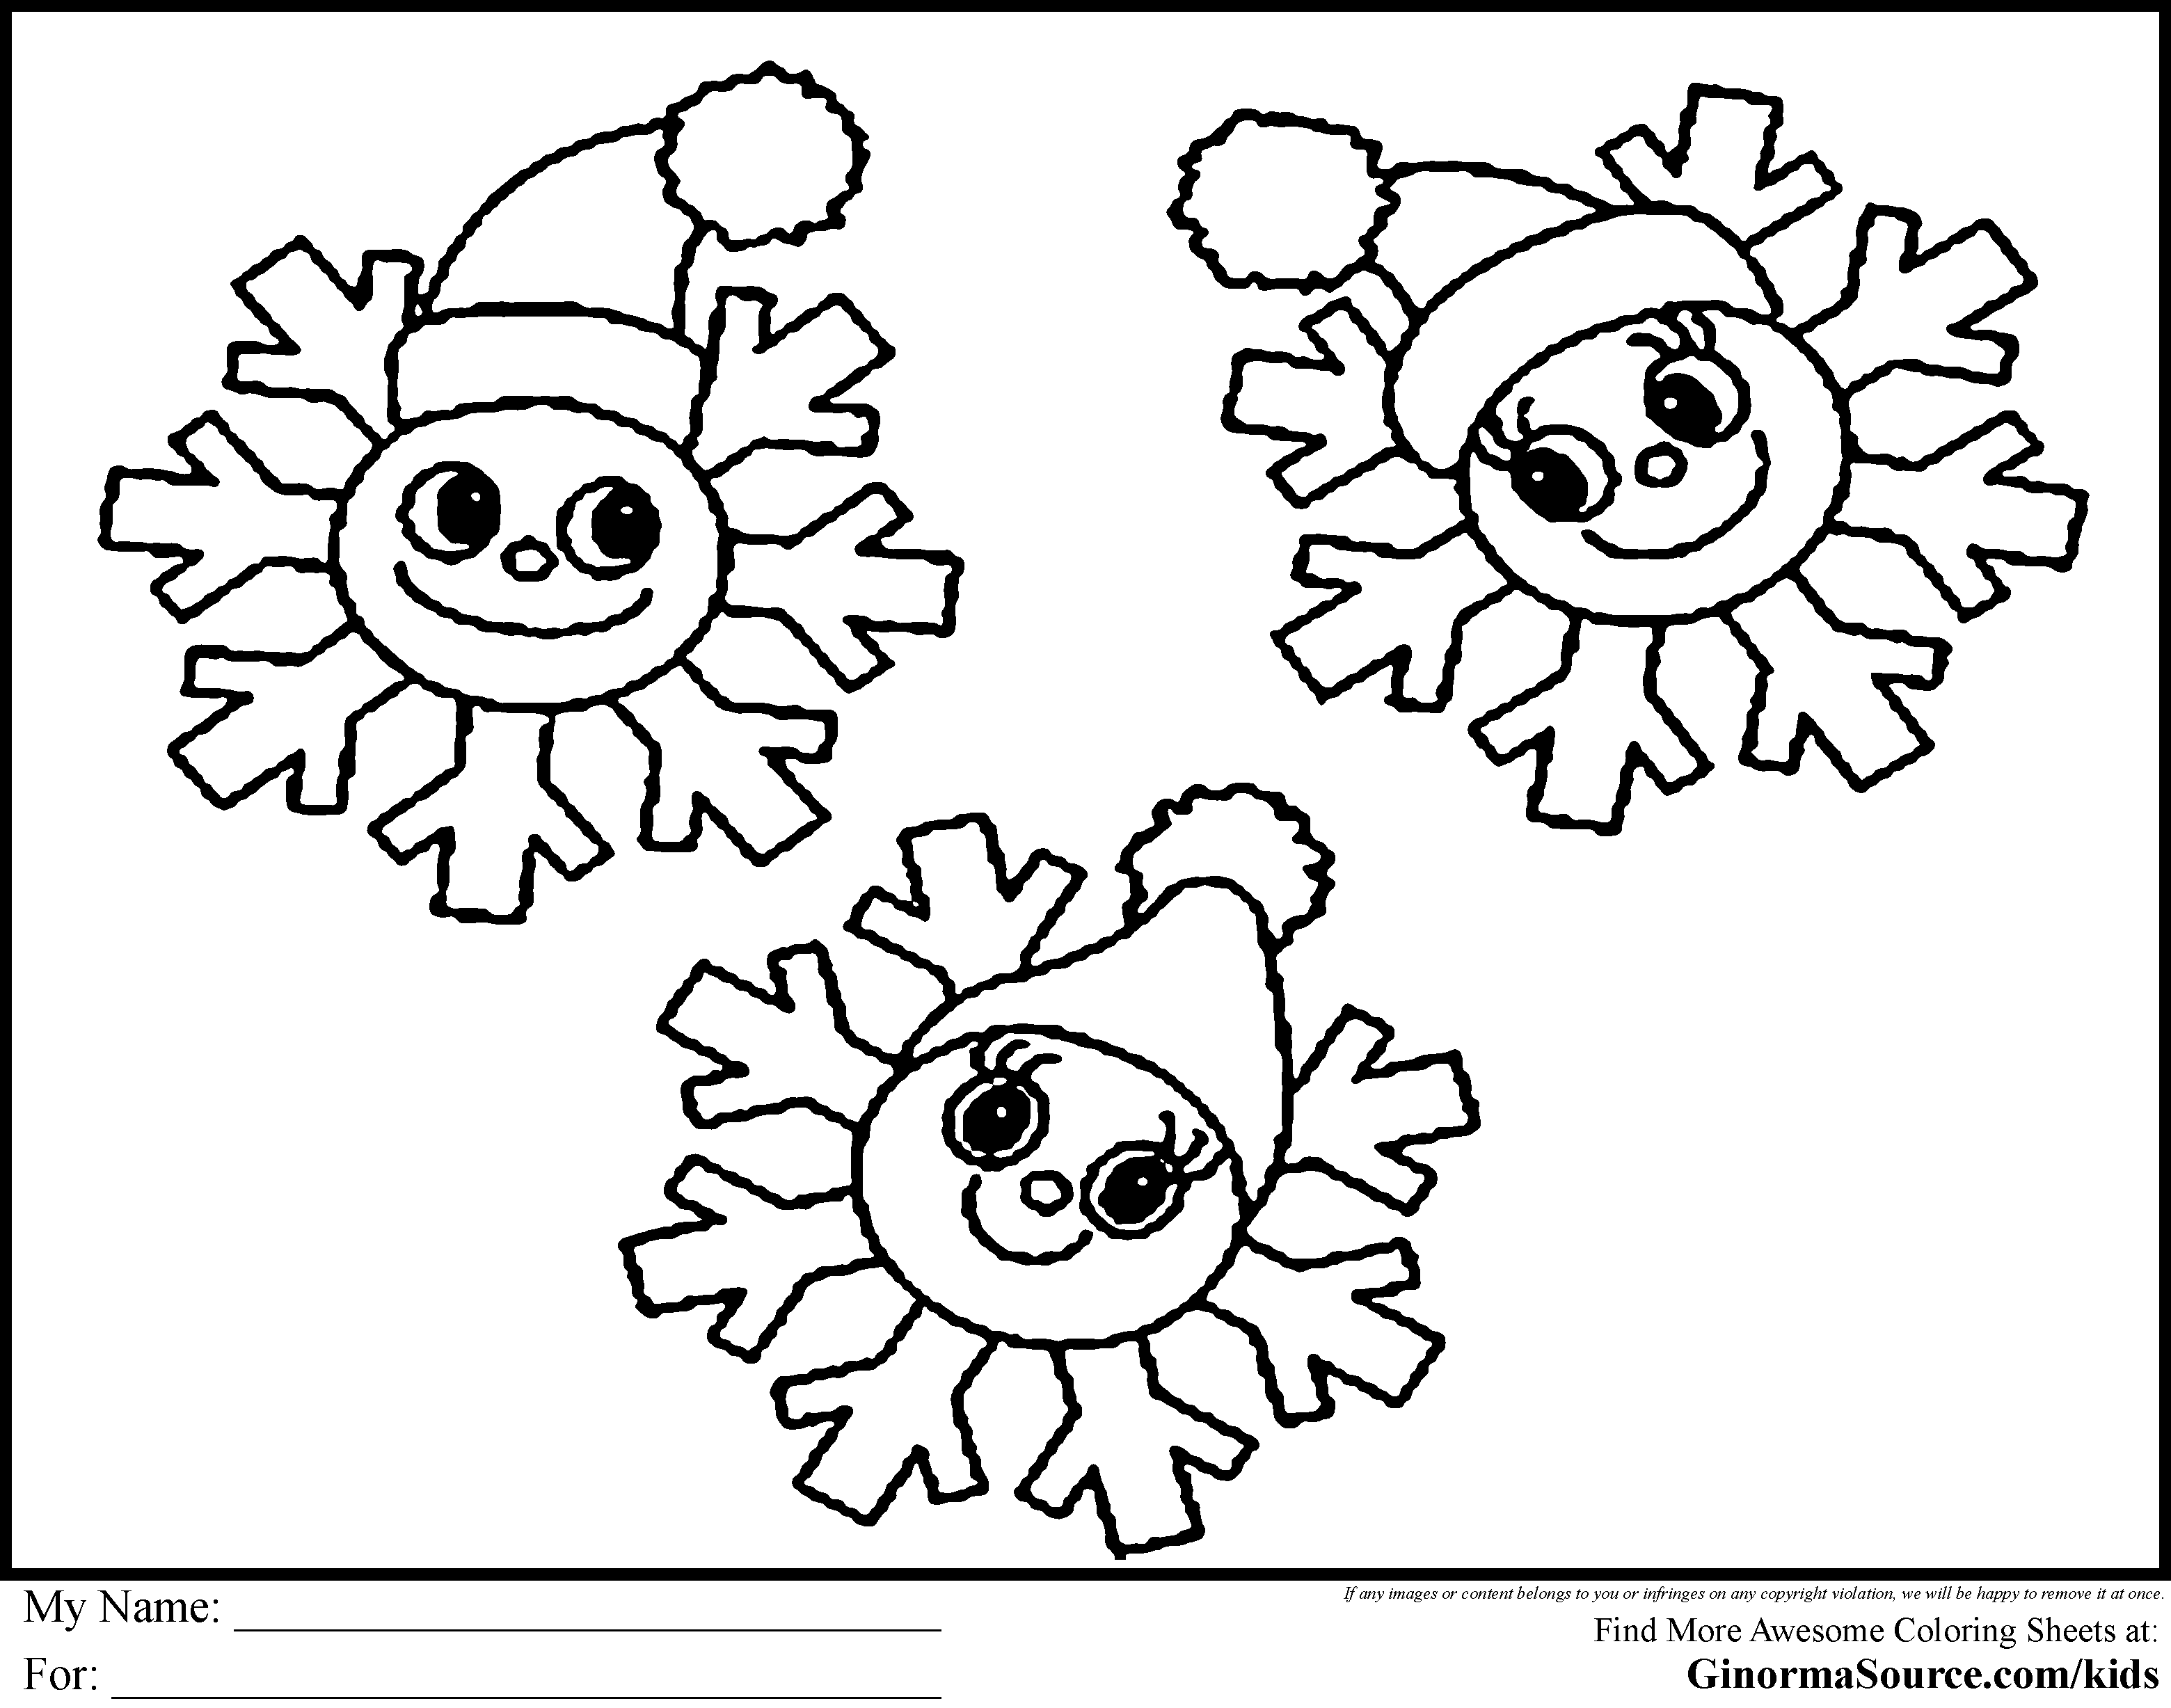 Snowflake Coloring Pages With Images